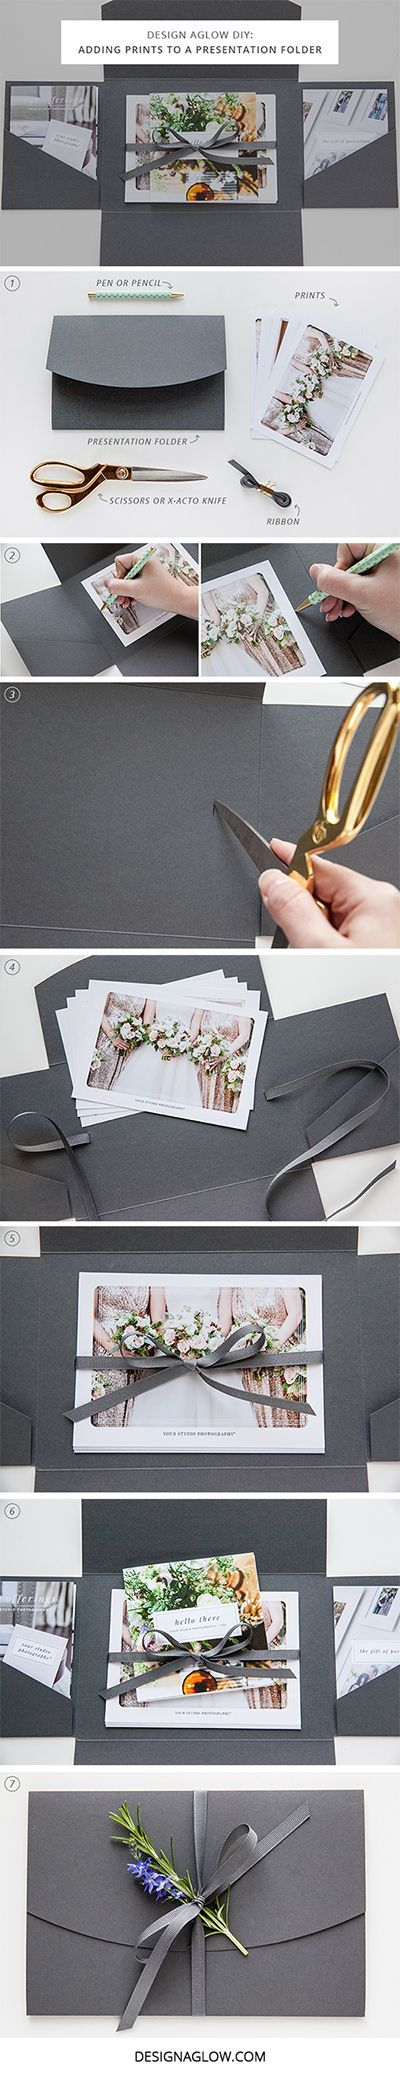 gift photography packaging #gift #photography / gift photography , gift photography styling , gift photography ideas , gift photography packaging , gift photography photographs , gift photography image